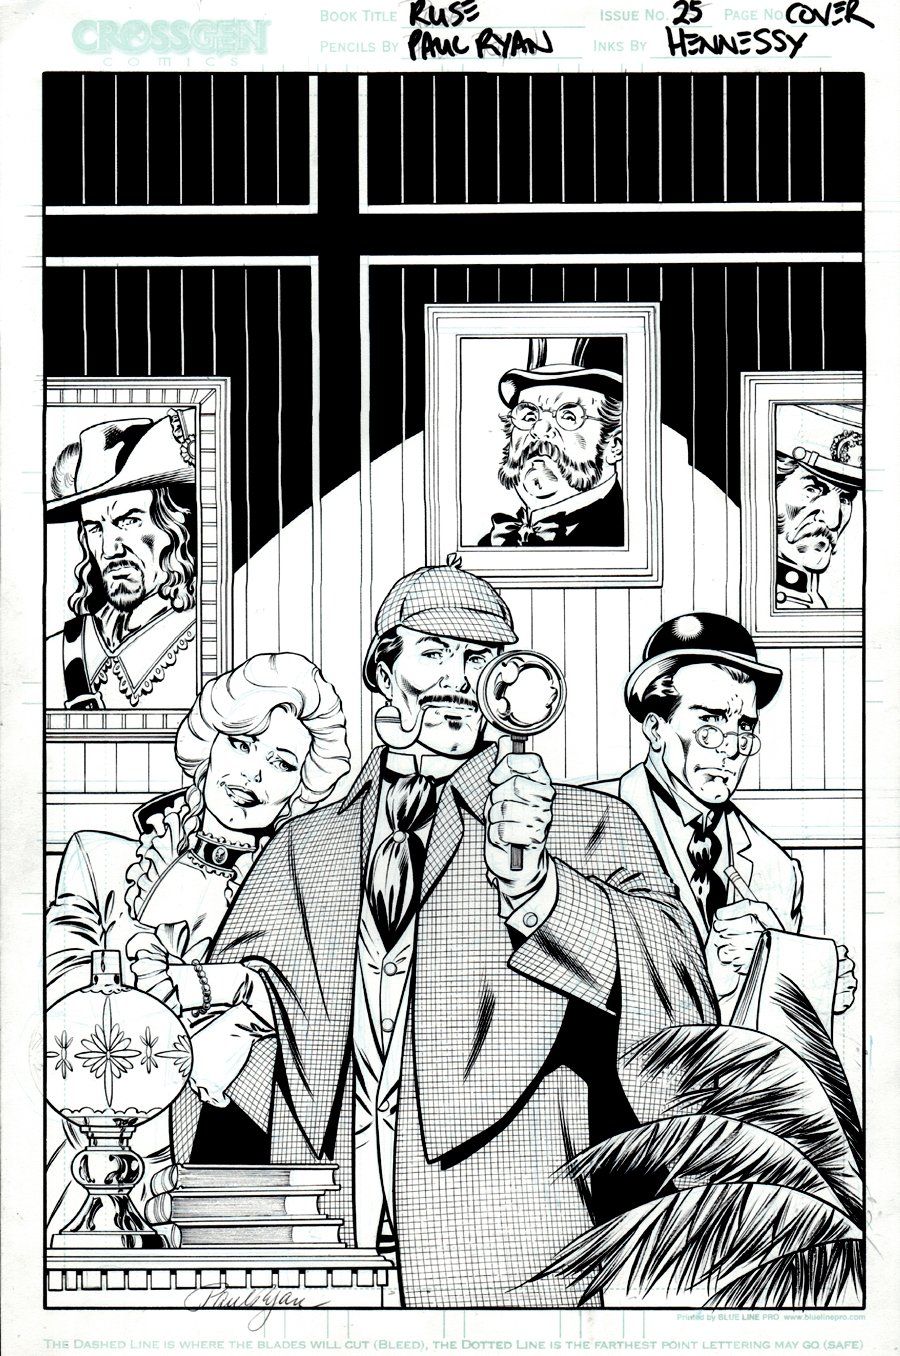 Ruse #25 Cover (2003)